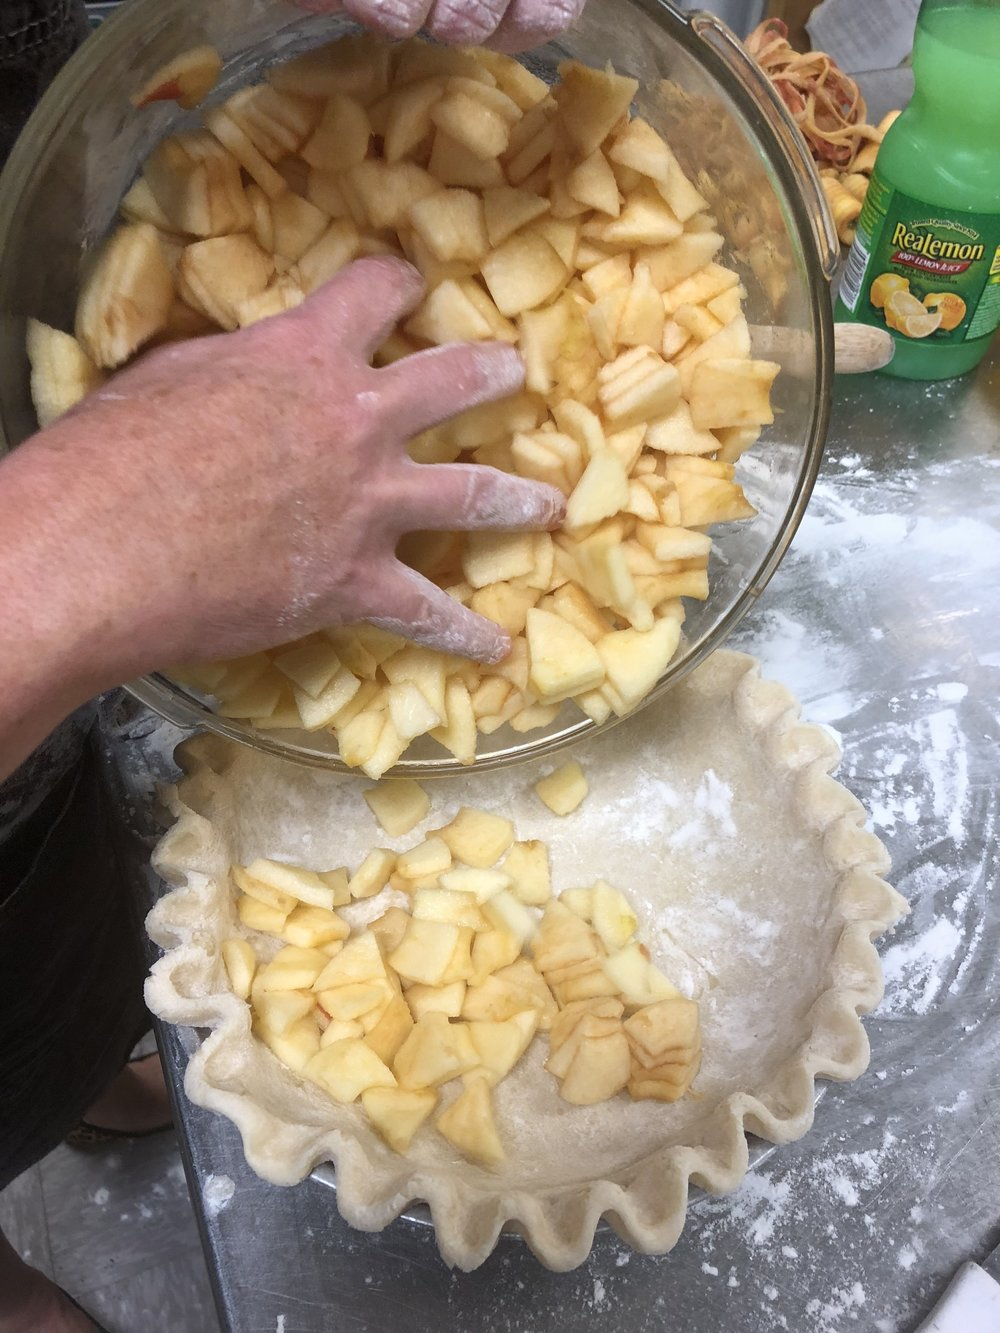 - Pour the apples into the pie crust.